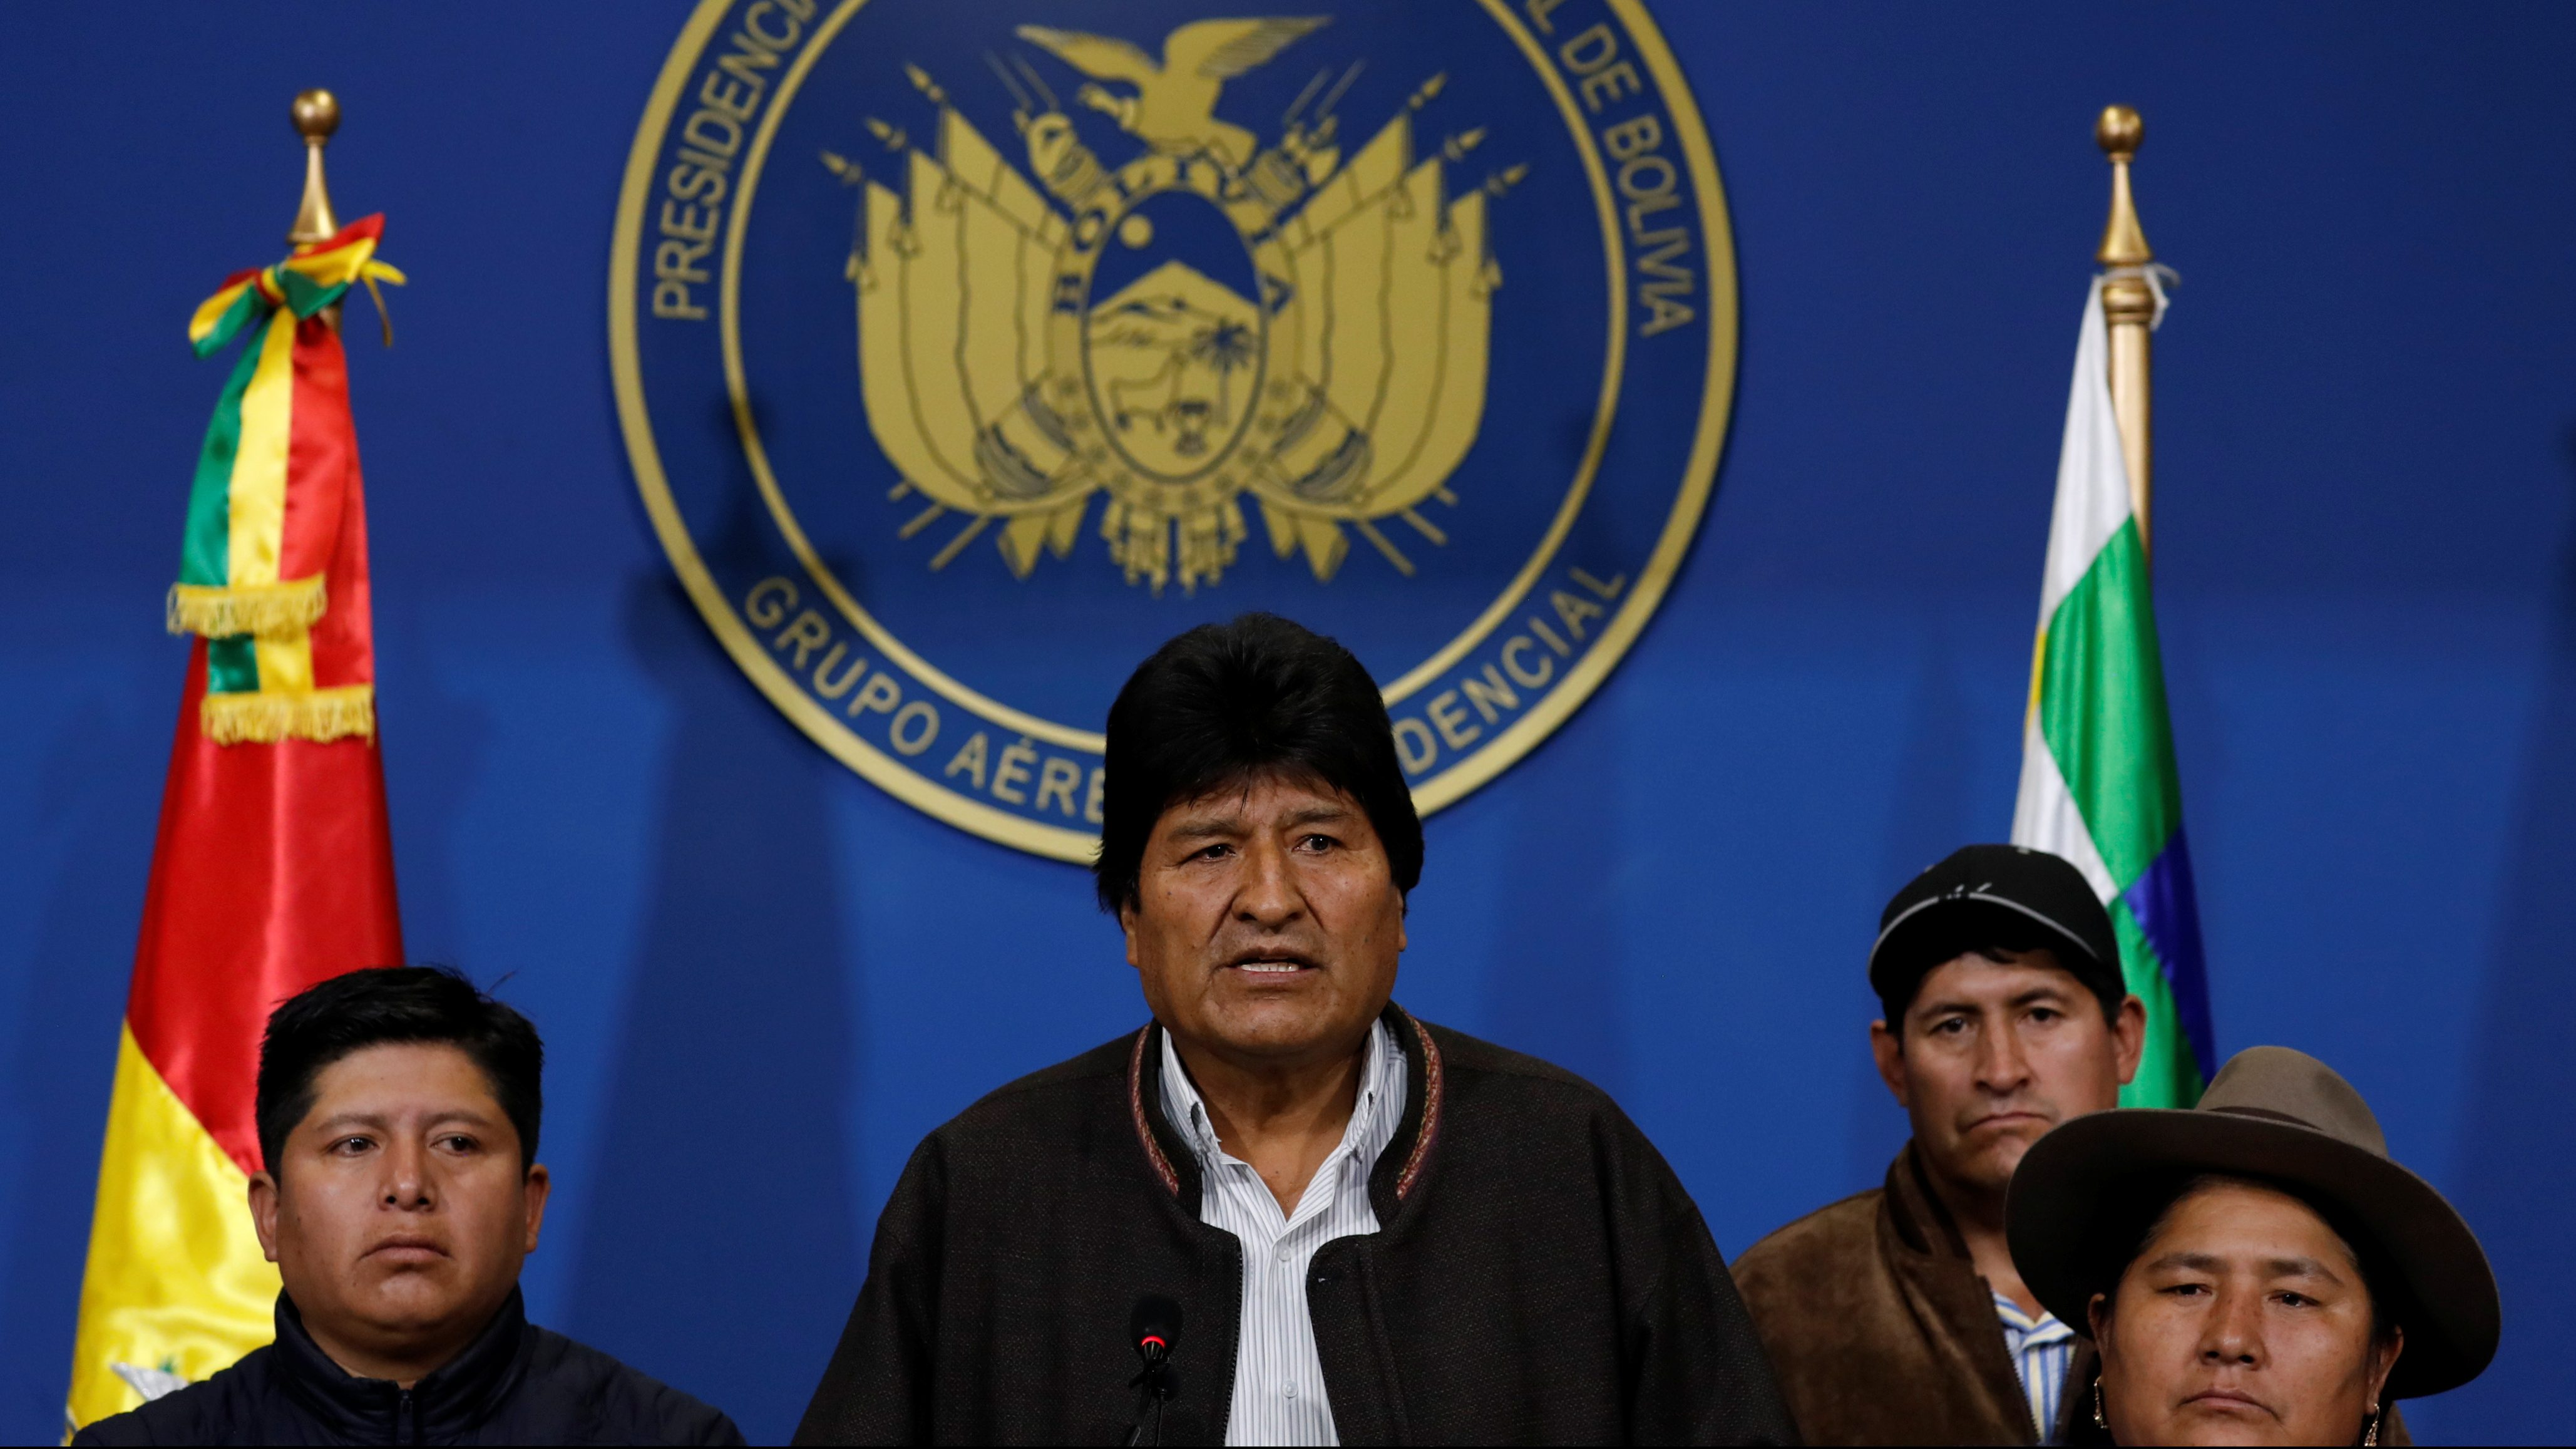 Bolivia's President Evo Morales addresses the media